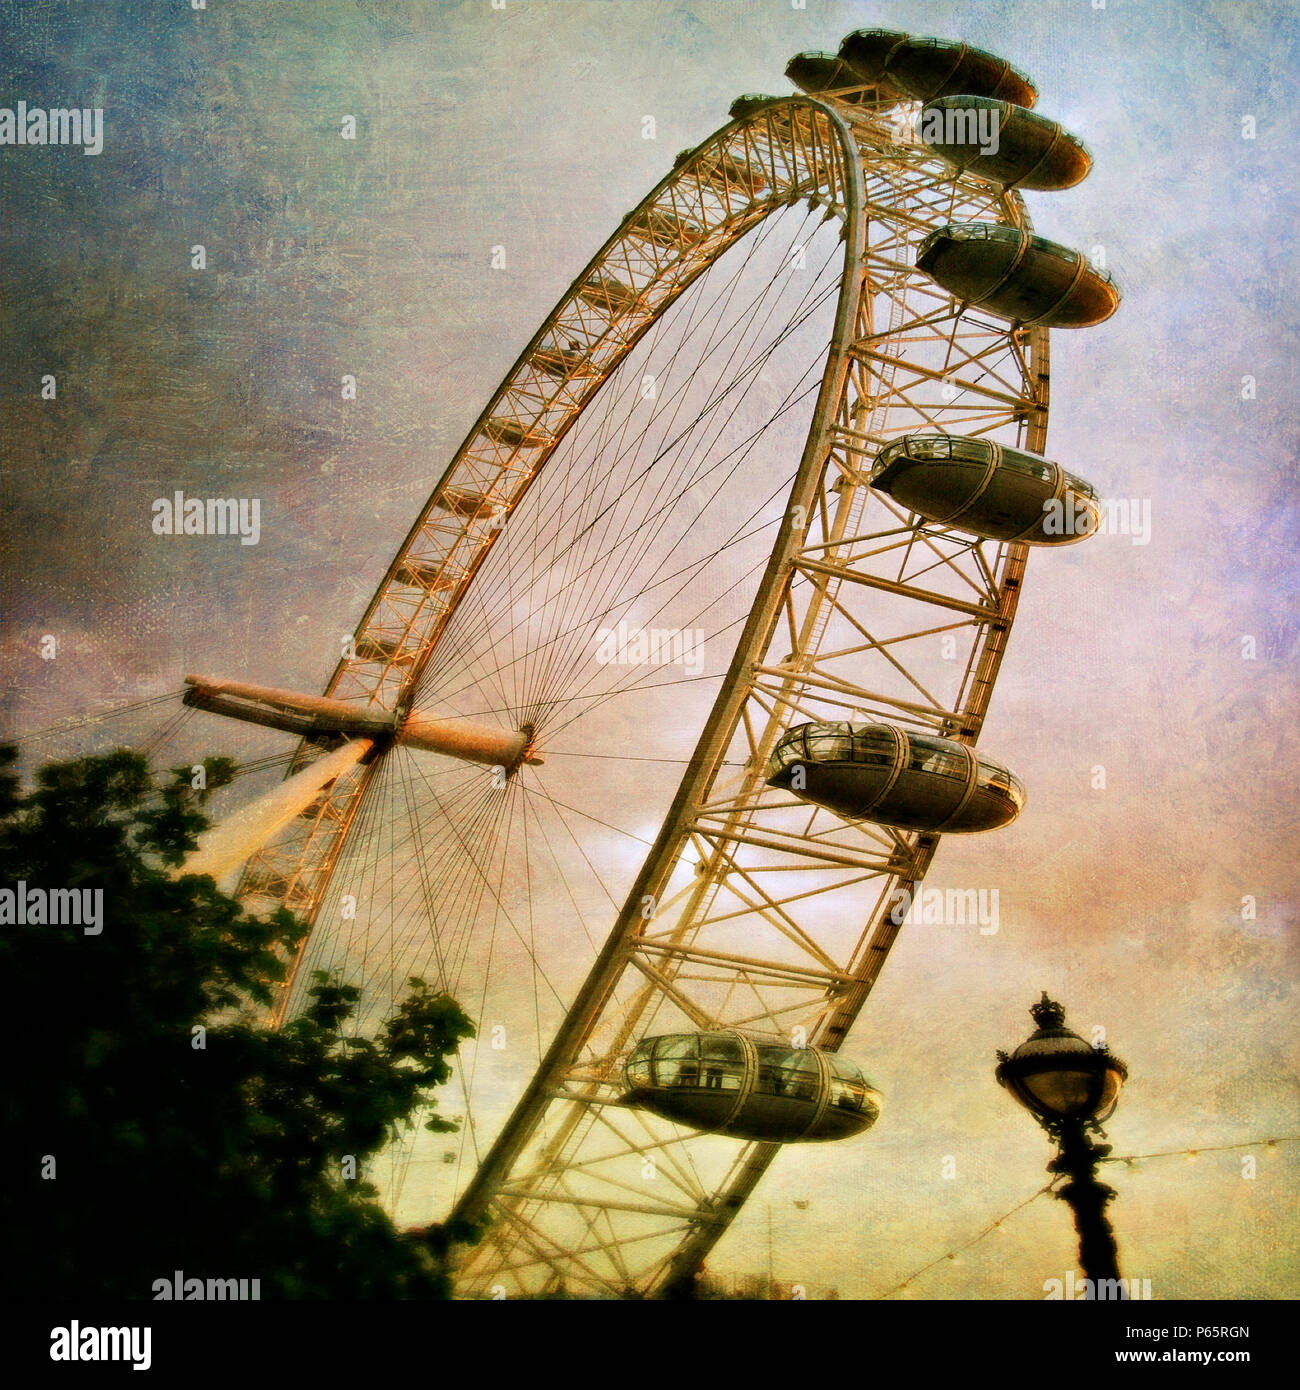 London Eye, London, UK. Designed by David Marks and Julia Barfield. - Stock Image